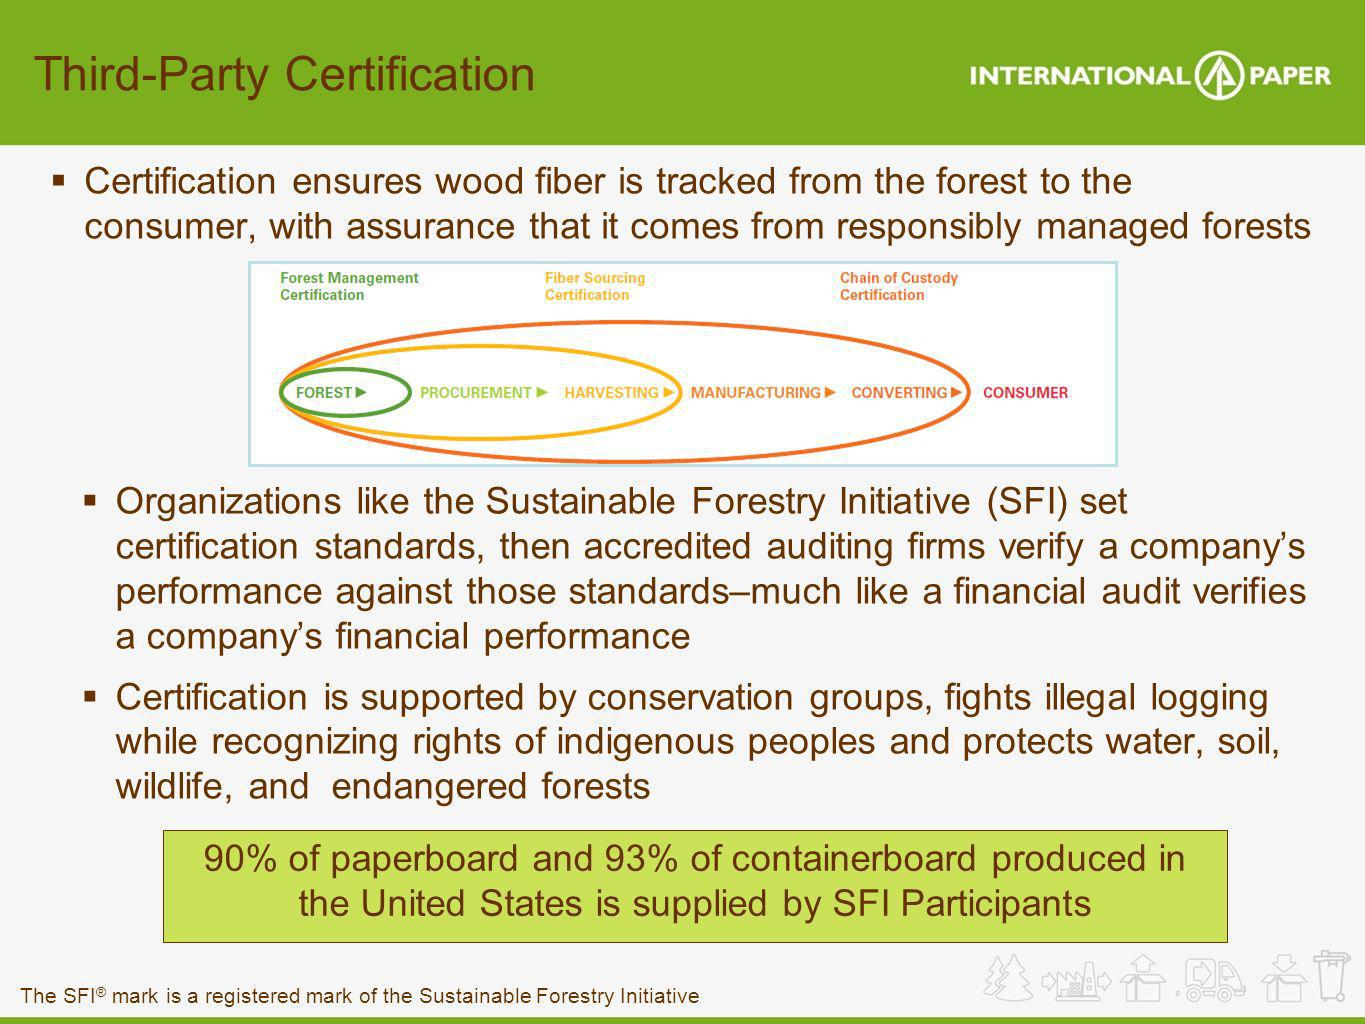 Sustainability january ppt download 5 third party certification 1betcityfo Choice Image